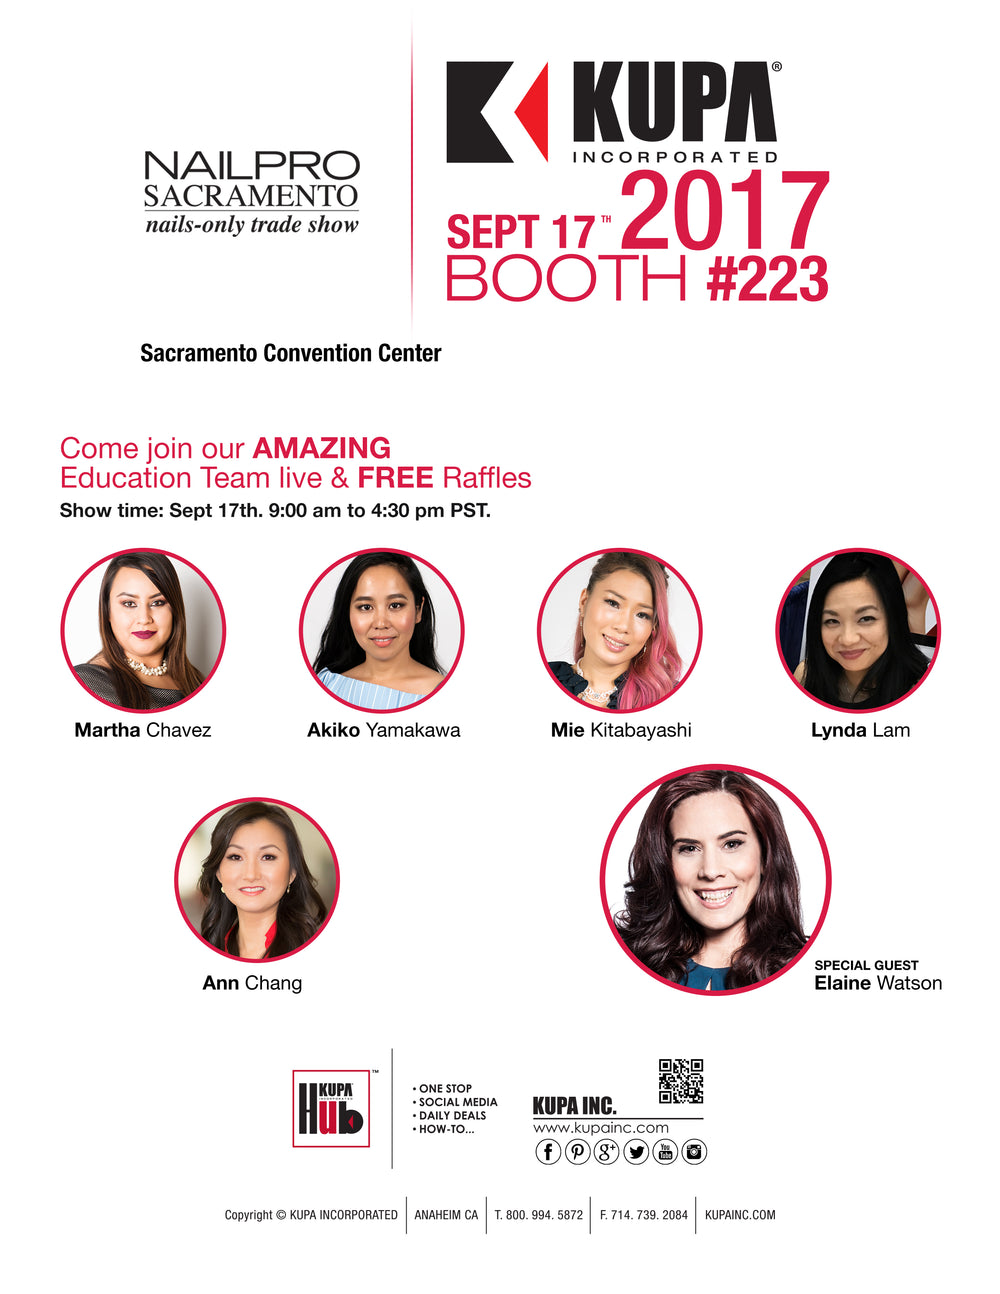 NAILPRO Sacramento 2017 with Team KUPA Inc